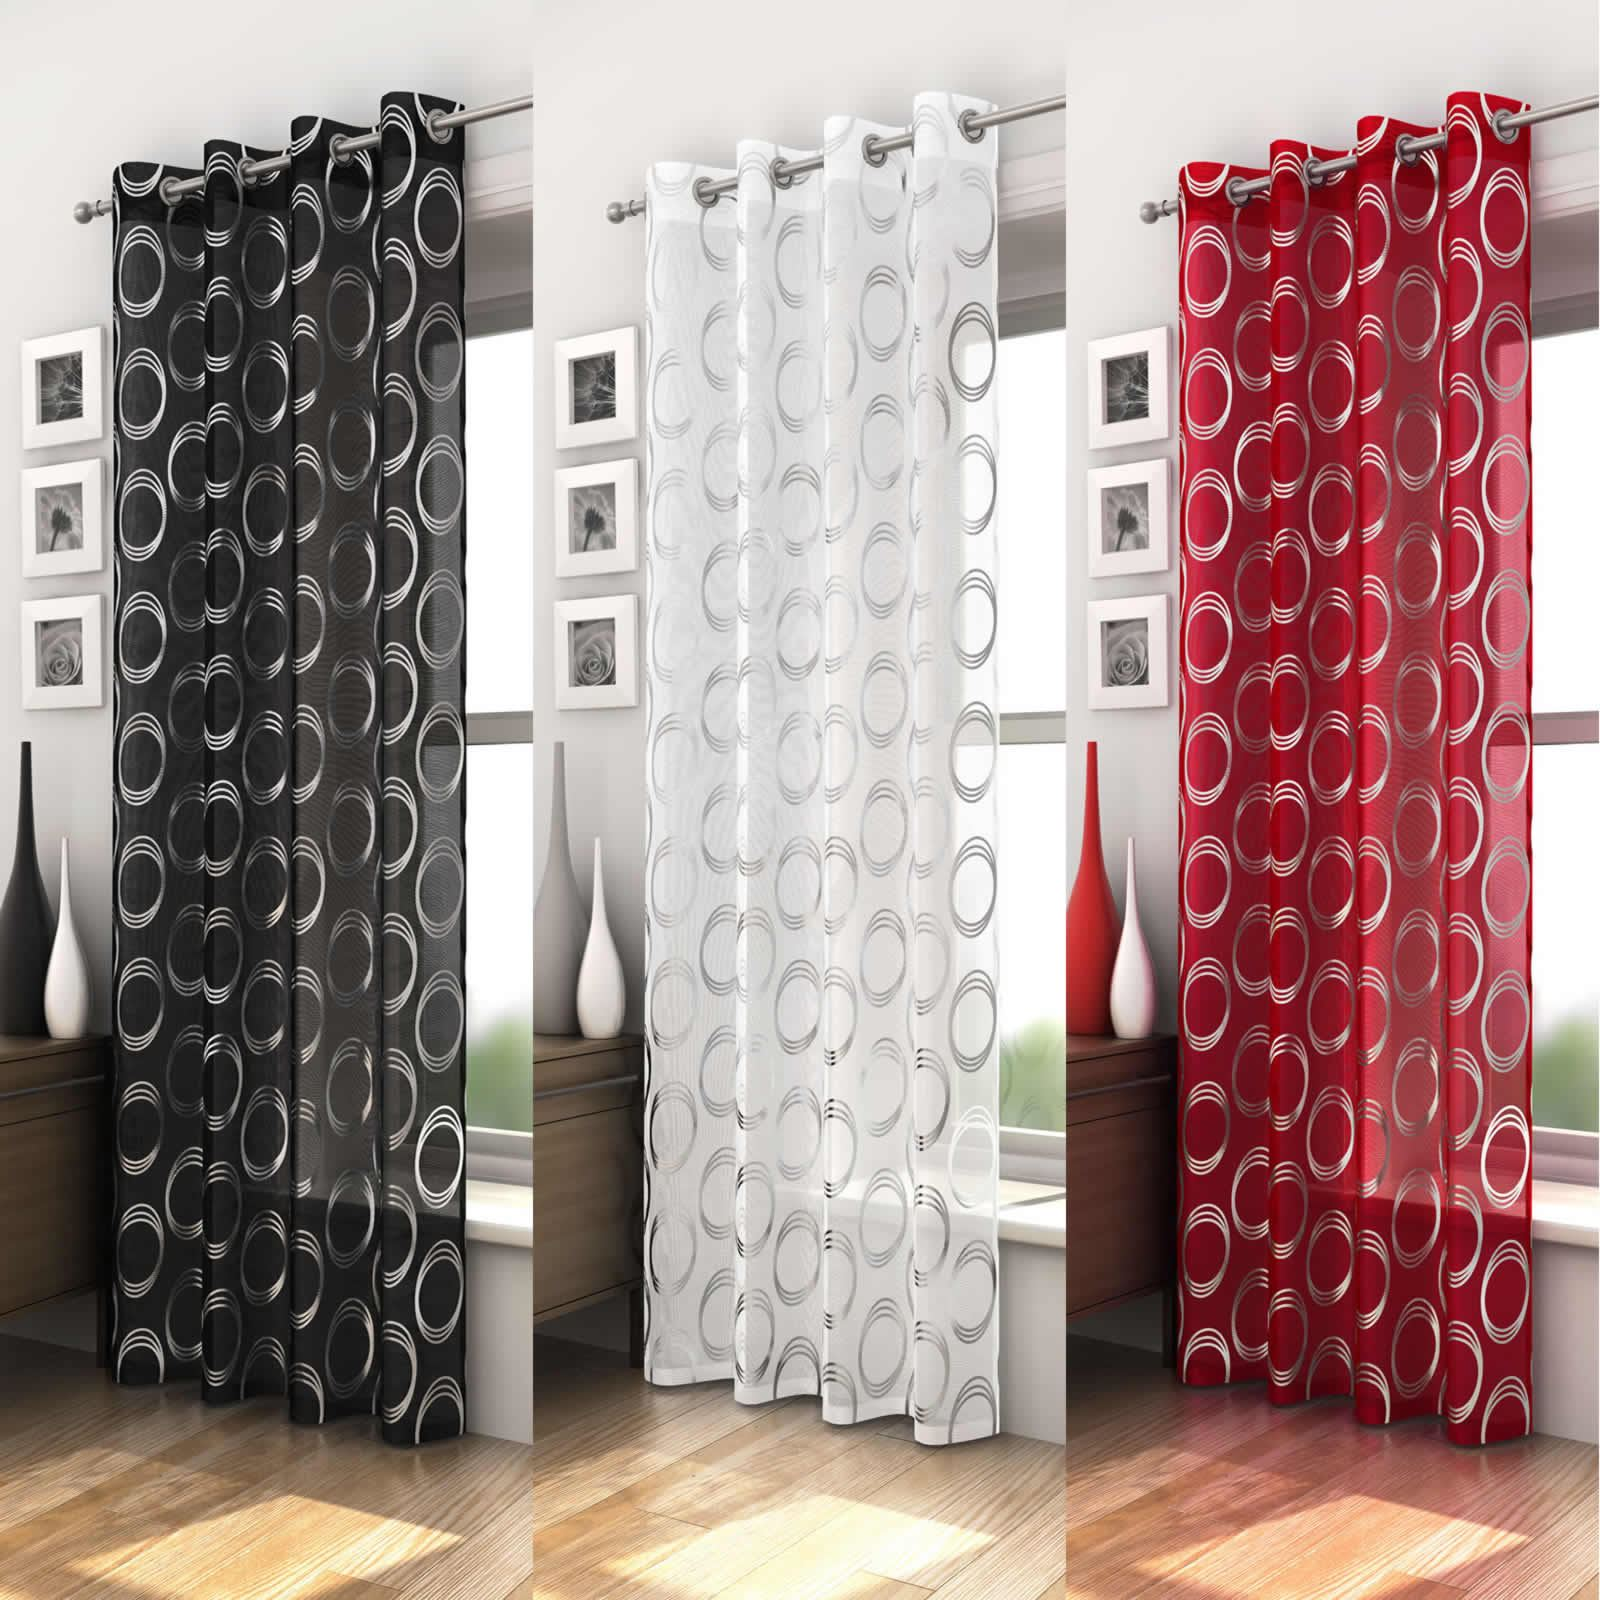 MEXICO RETRO CIRCLE PATTERN VOILE CURTAIN PANEL READY MADE RED BLACK WHITE GREY EBay